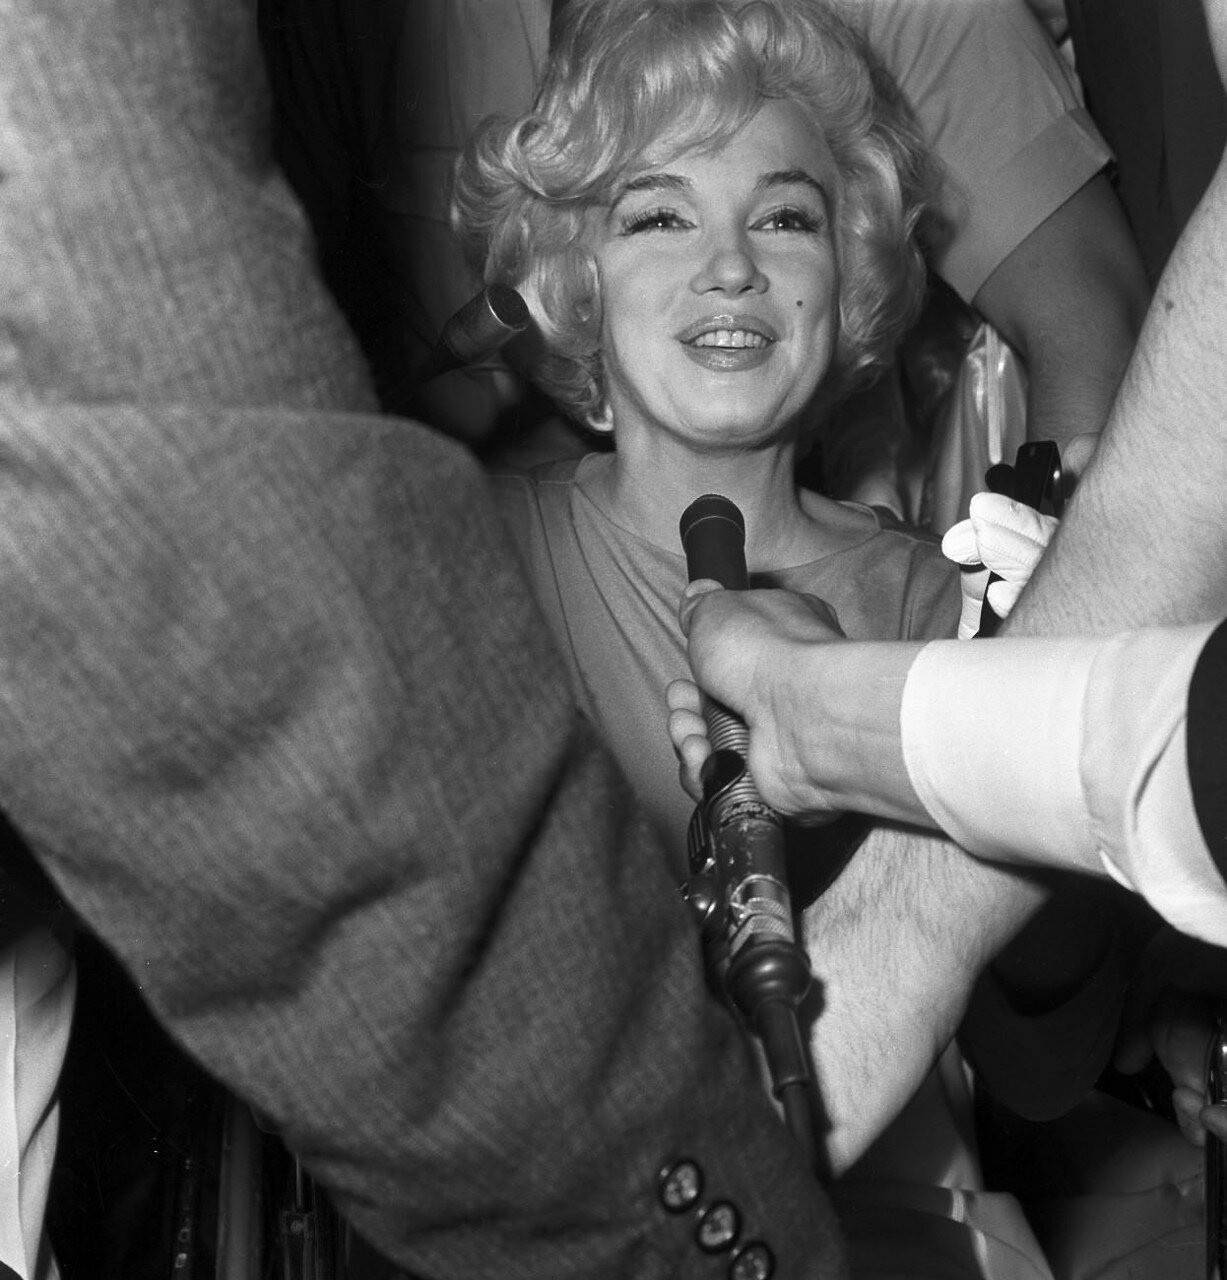 Newsmen Interviewing Marilyn Monroe